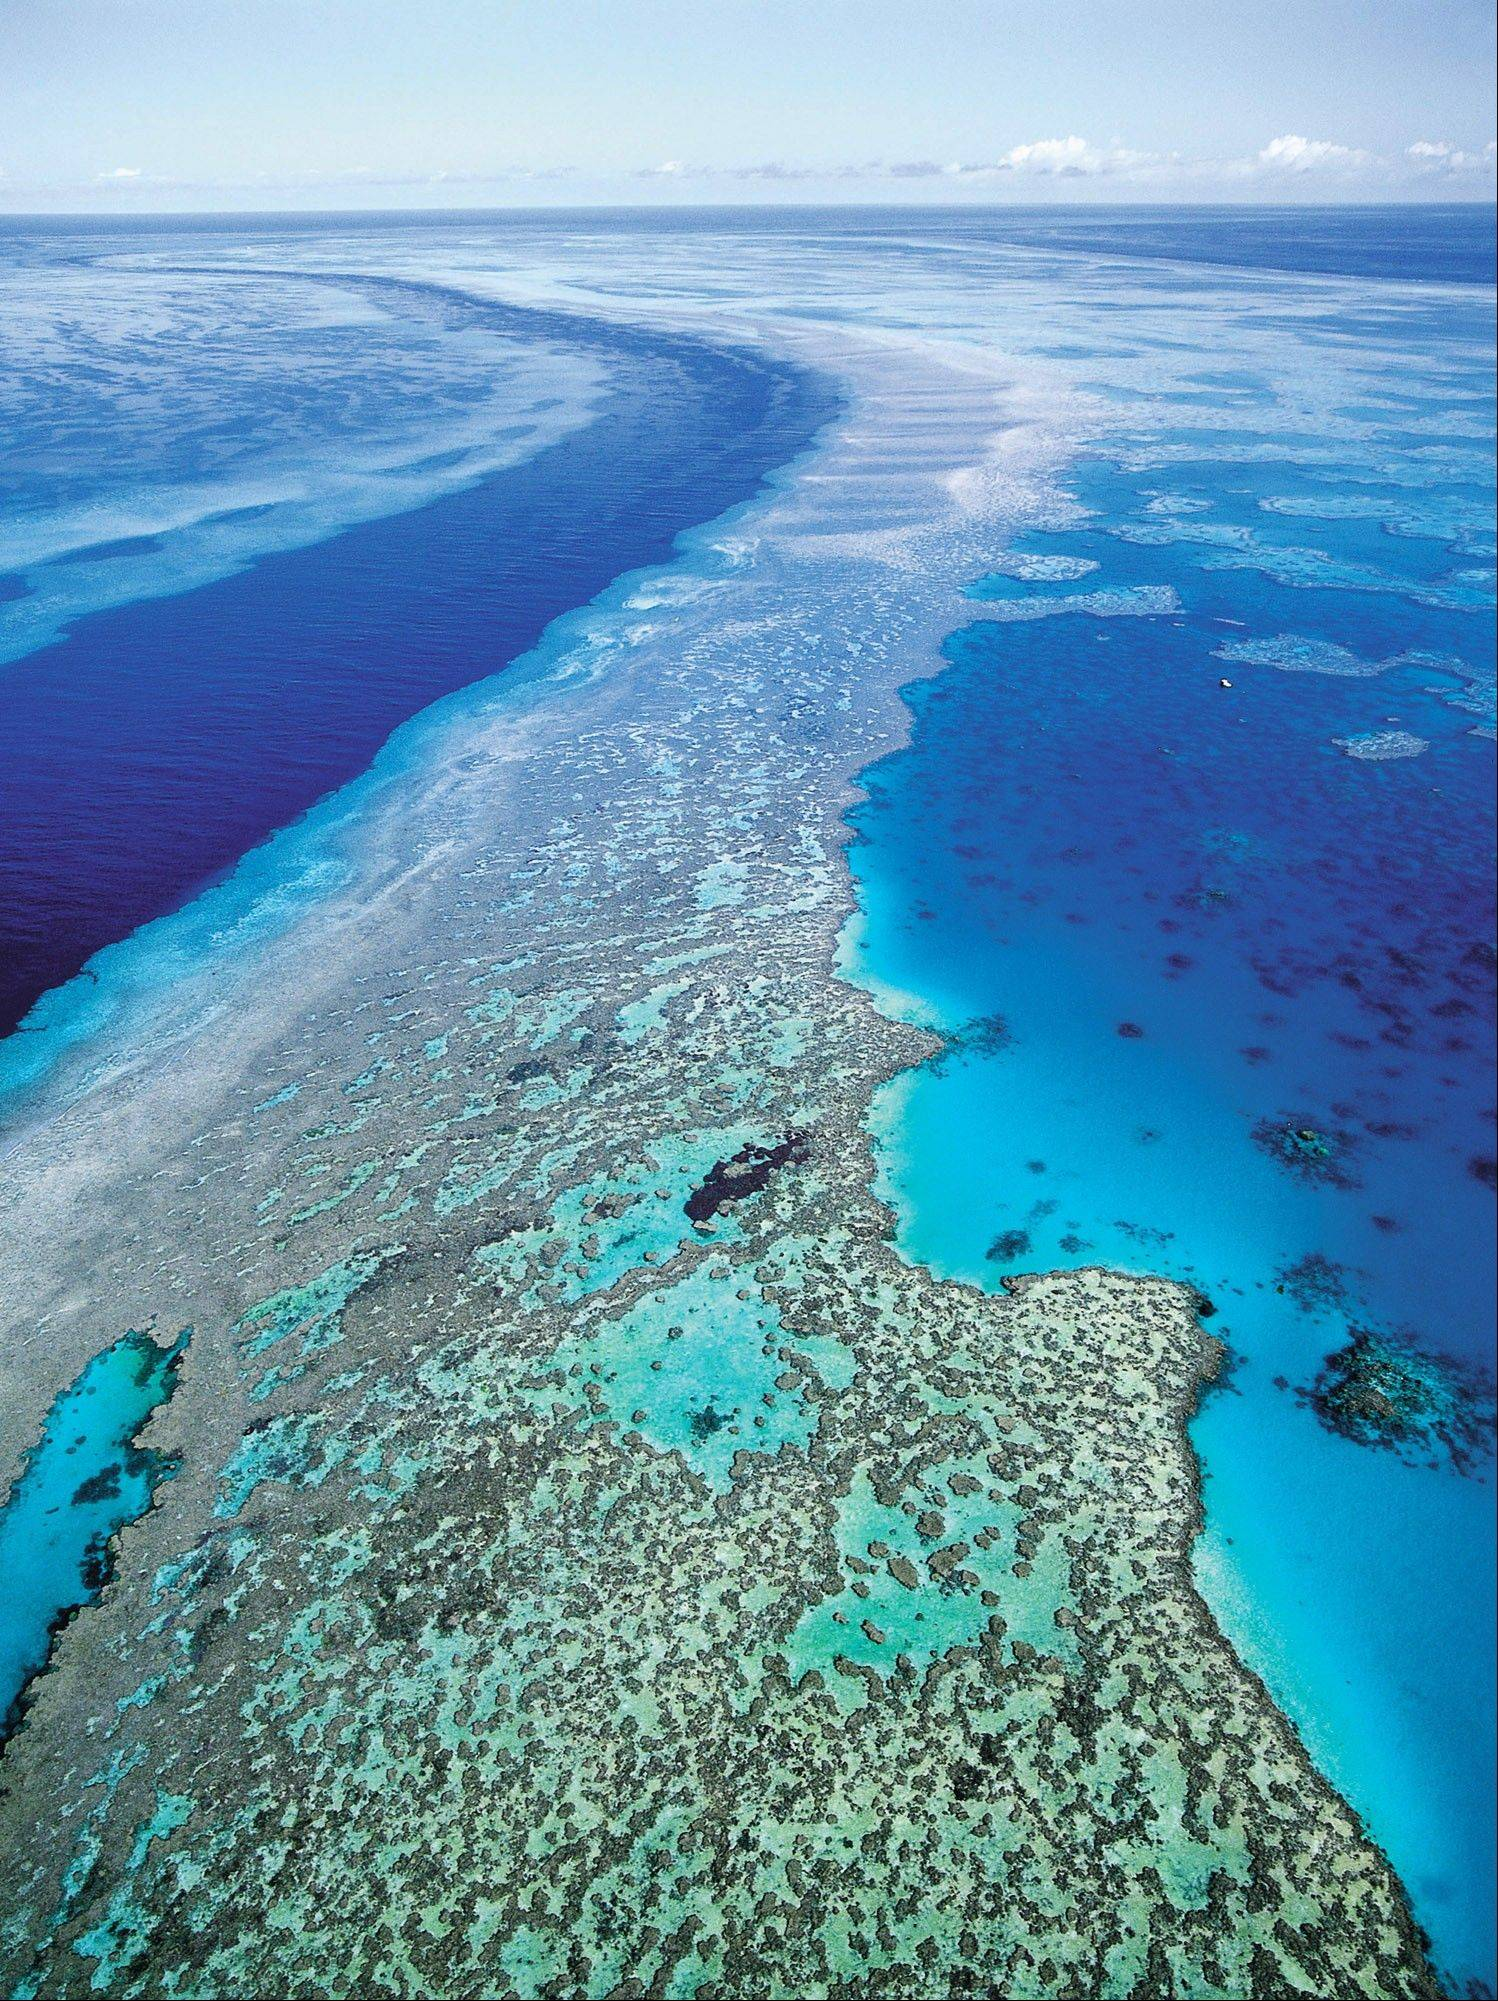 Associated Press/Sept. 2001 An aerial view shows the Great Barrier Reef off Australia's Queensland state. Starvation, poverty, flooding, heat waves, droughts, war and disease already lead to human tragedies. They're likely to worsen as the world warms from climate change, a leaked draft of an international scientific report forecasts.